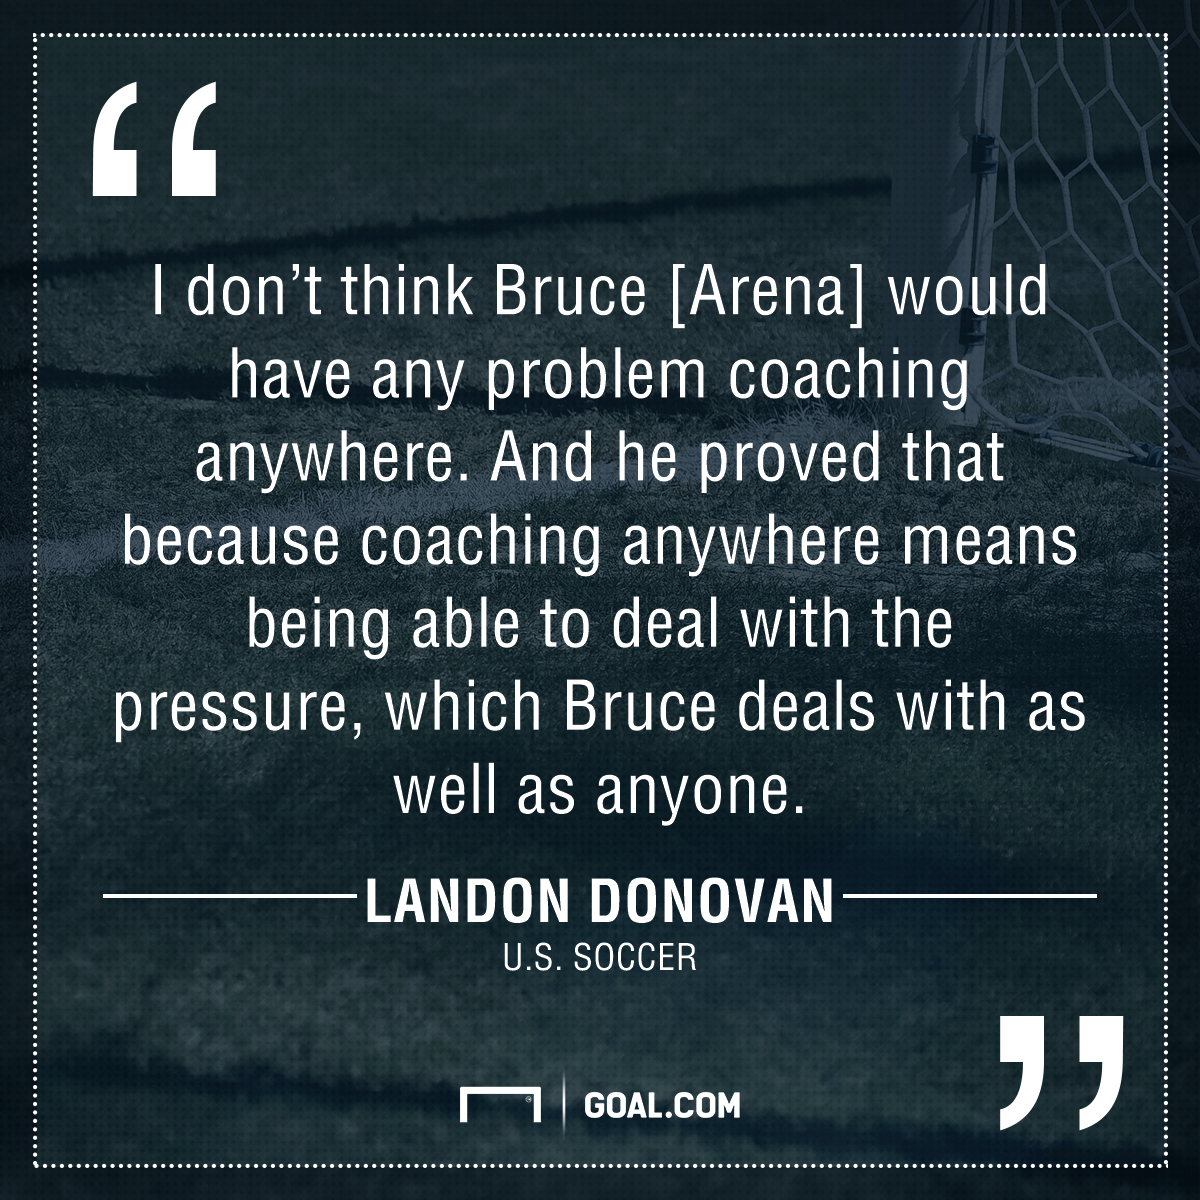 Landon Donovan quote